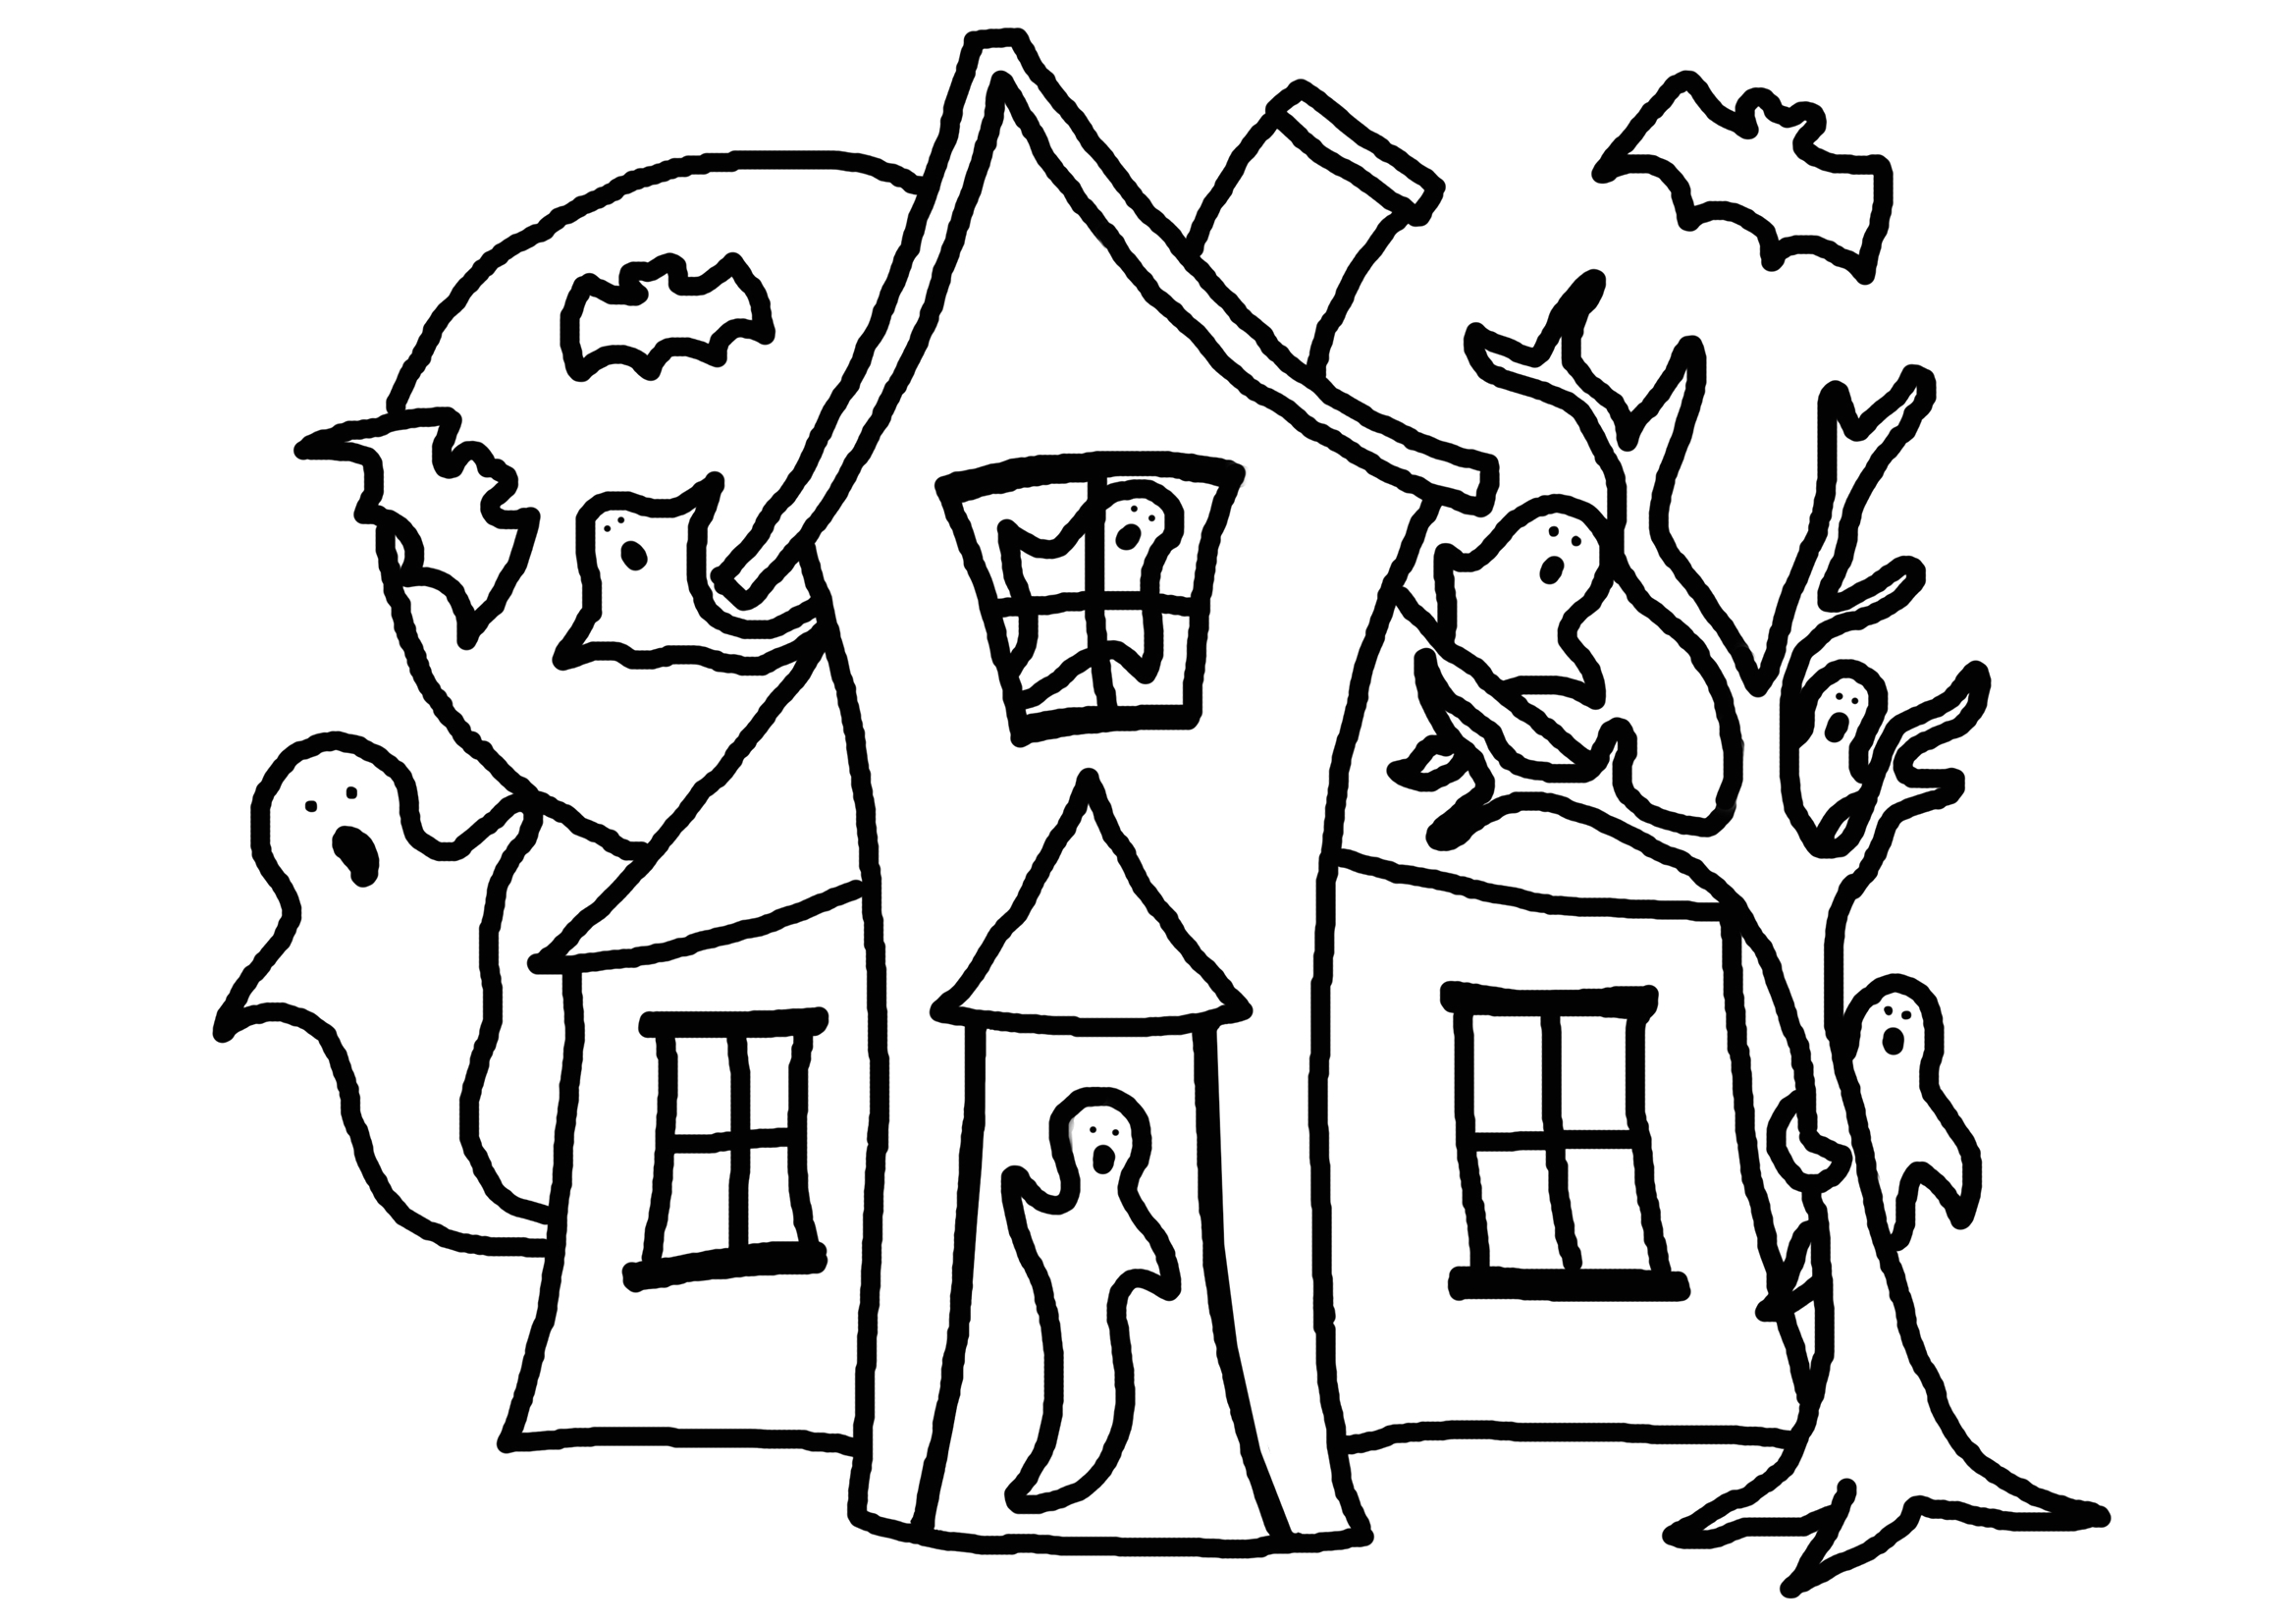 Free Printable House Coloring Pages for Kids Free Printable Haunted House Coloring Pages for Kids